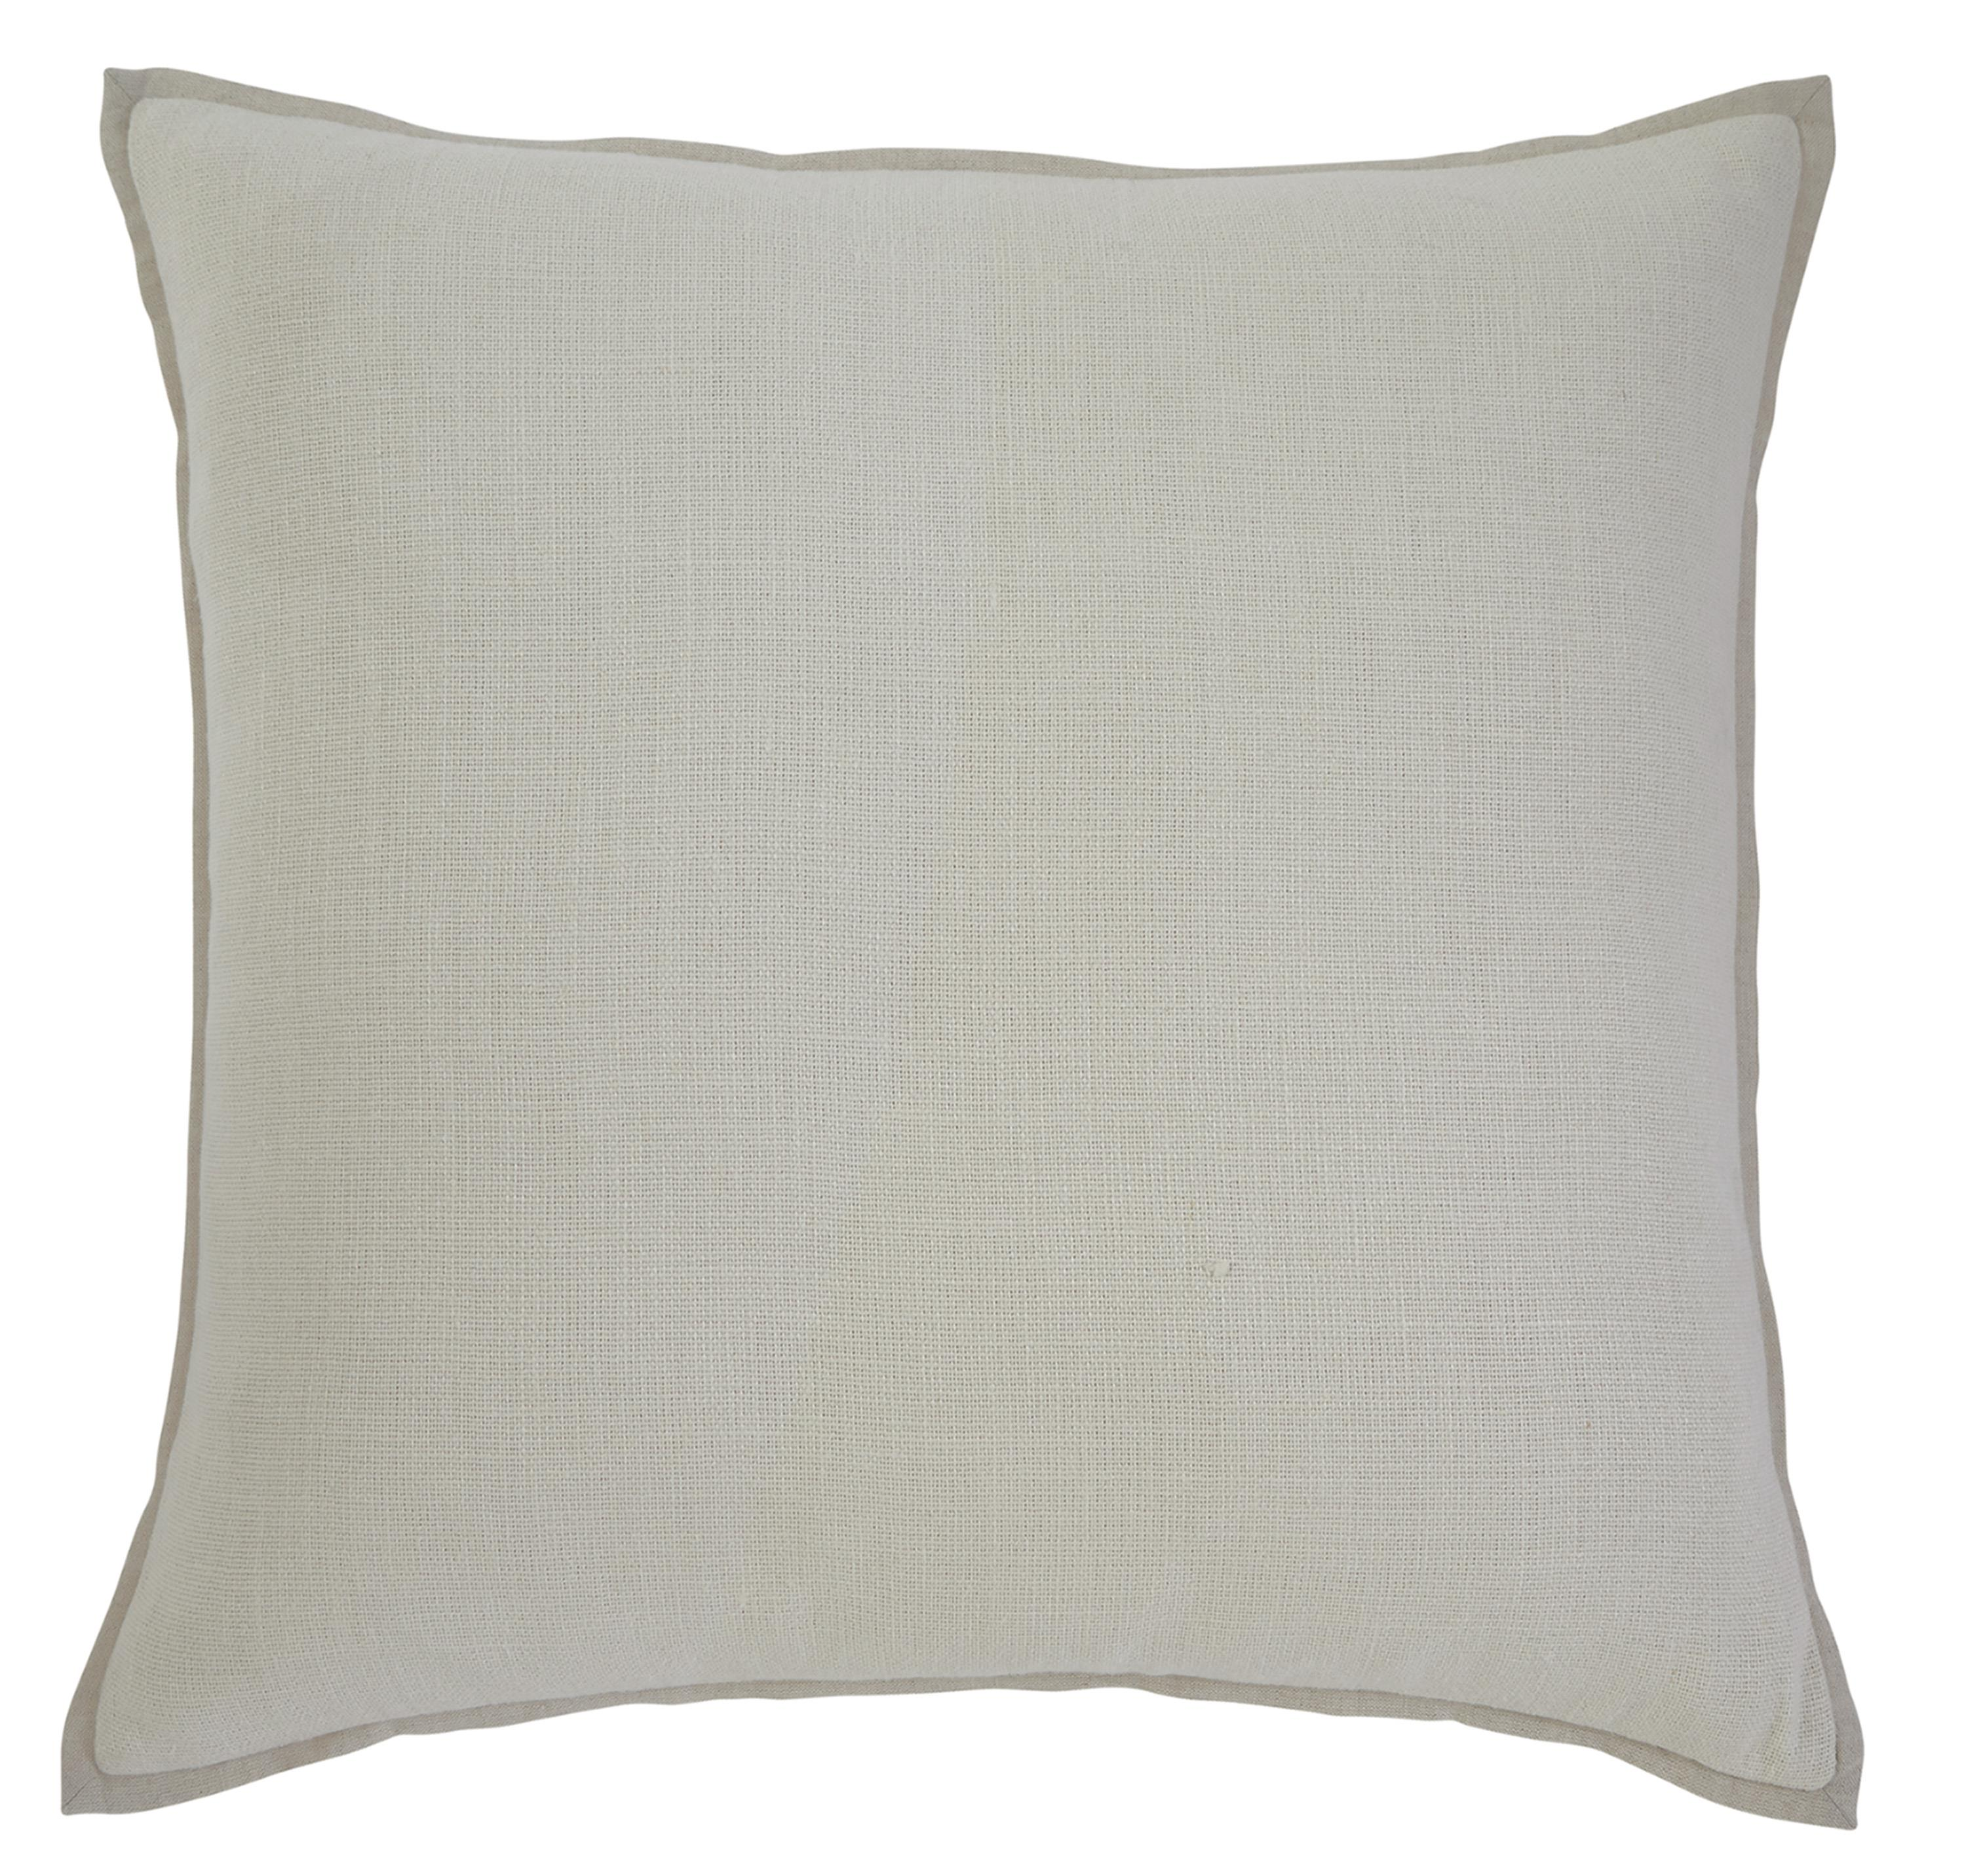 Signature Design by Ashley Pillows Solid - Ecru Pillow Cover - Item Number: A1000339P